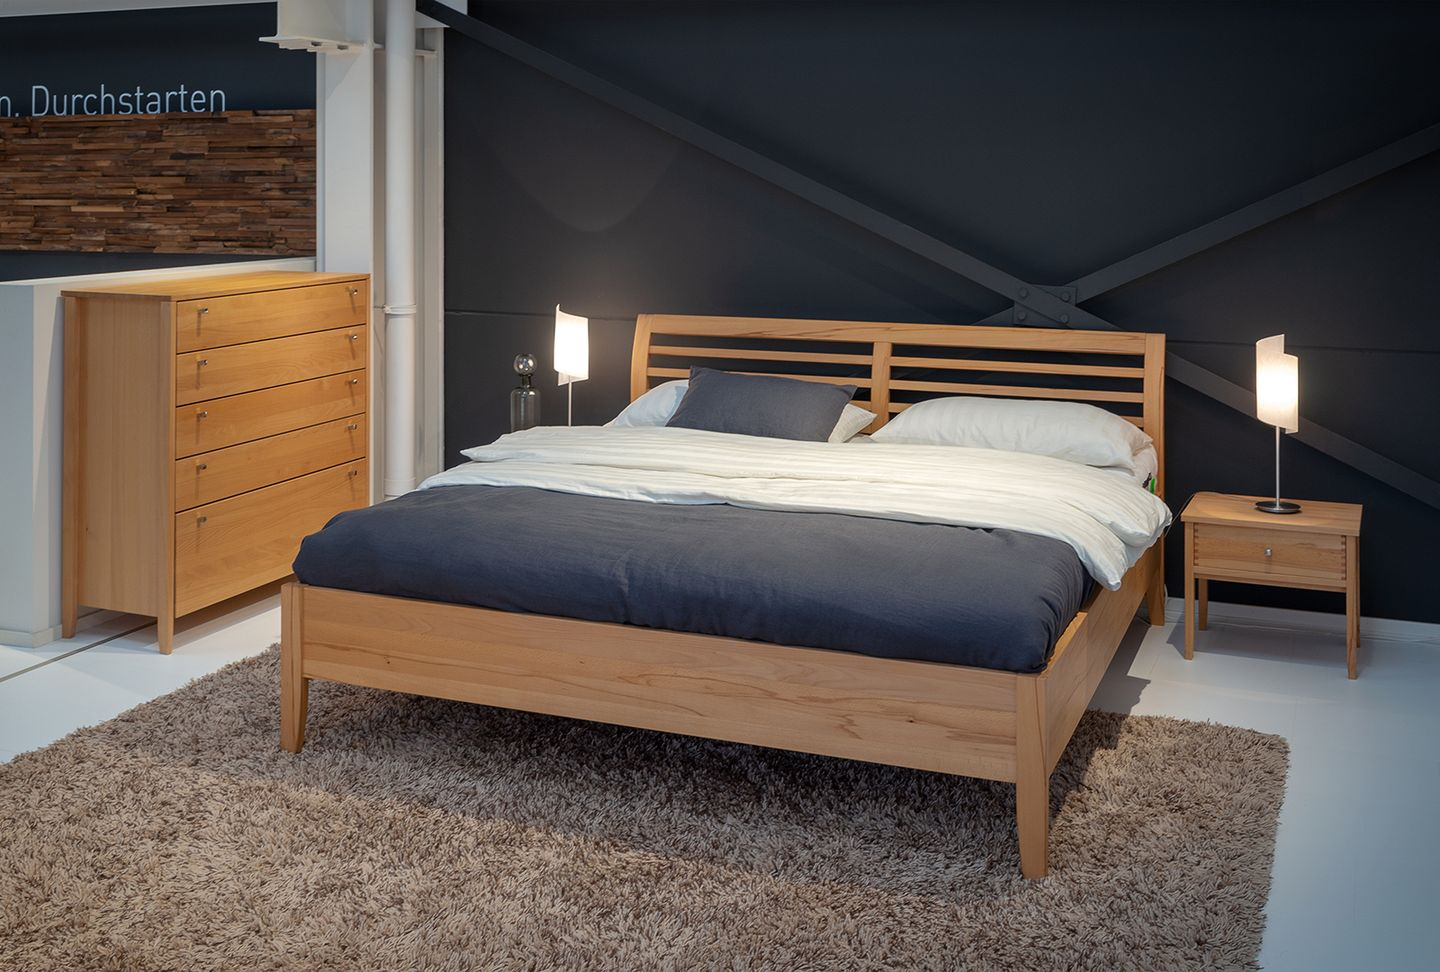 mylon bed with slatted headboard at TEAM 7 store Hamburg Altona